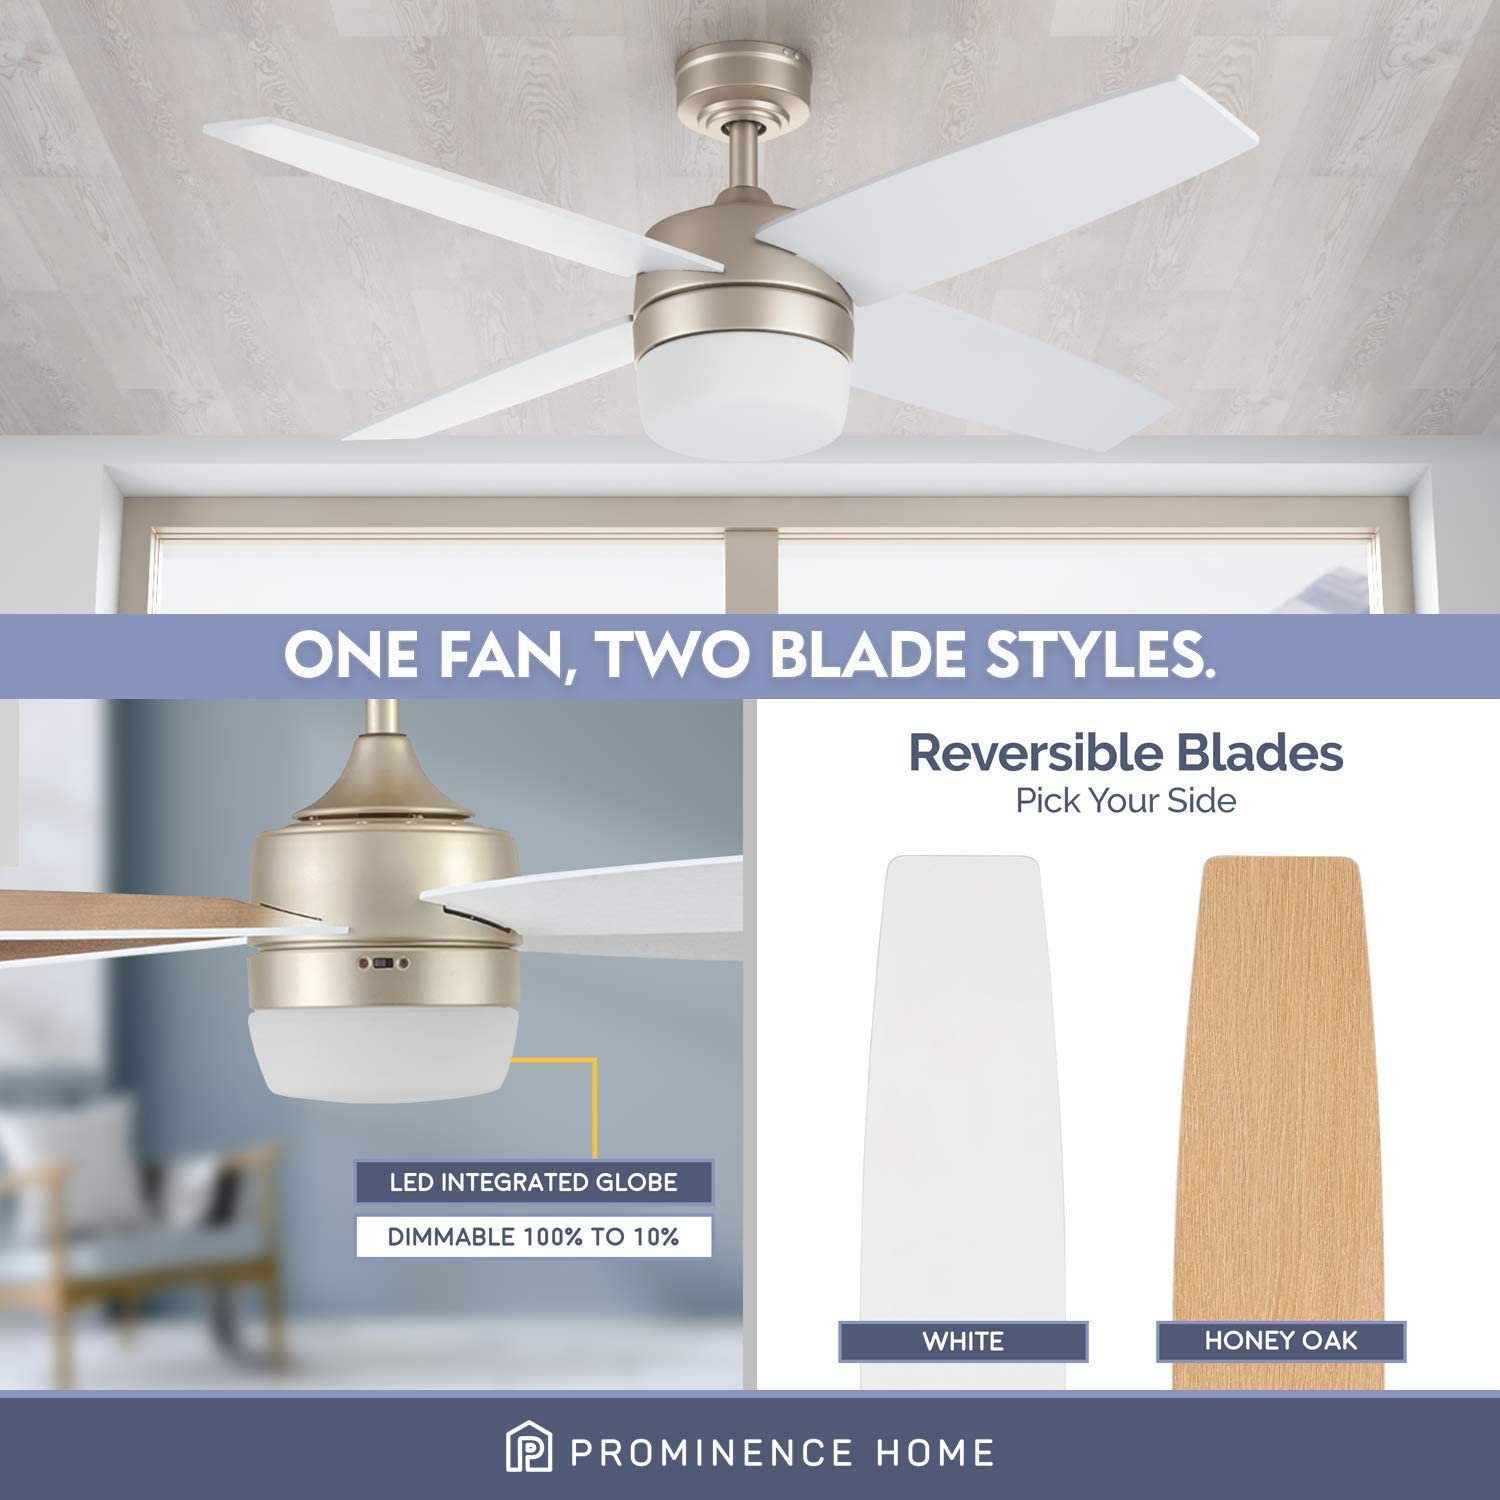 Champagne Prominence Home 51470 01 Atlas Ceiling Fan 44 Tools Home Improvement Ceiling Fans Accessories Urbytus Com